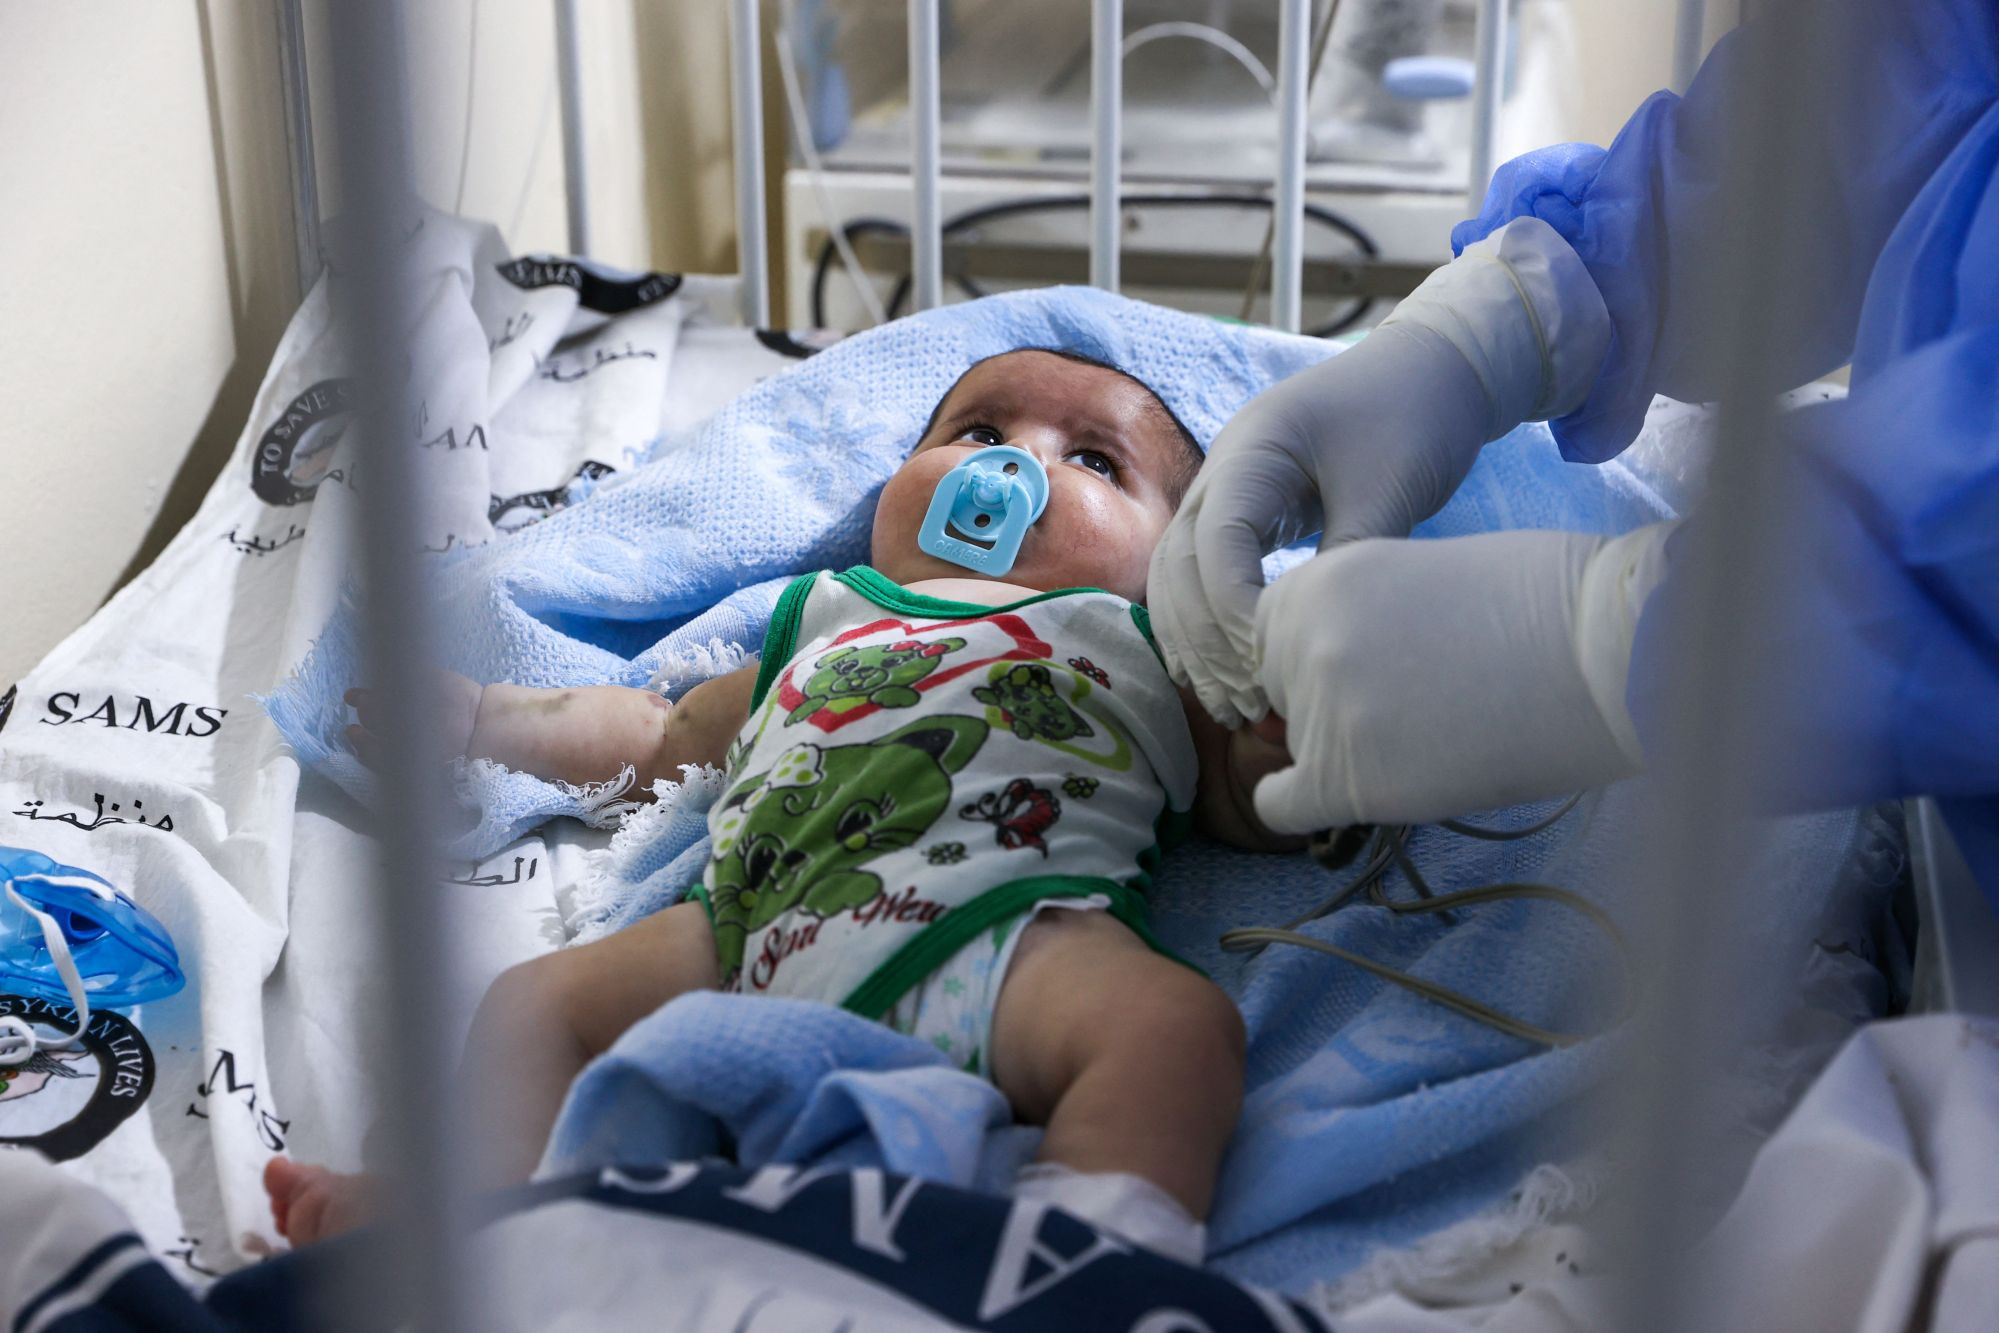 A medic cares for a baby at a COVID-19 isolation ward, in Syria, on Sept. 5, 2021. (OMAR HAJ KADOUR/AFP via Getty Images)